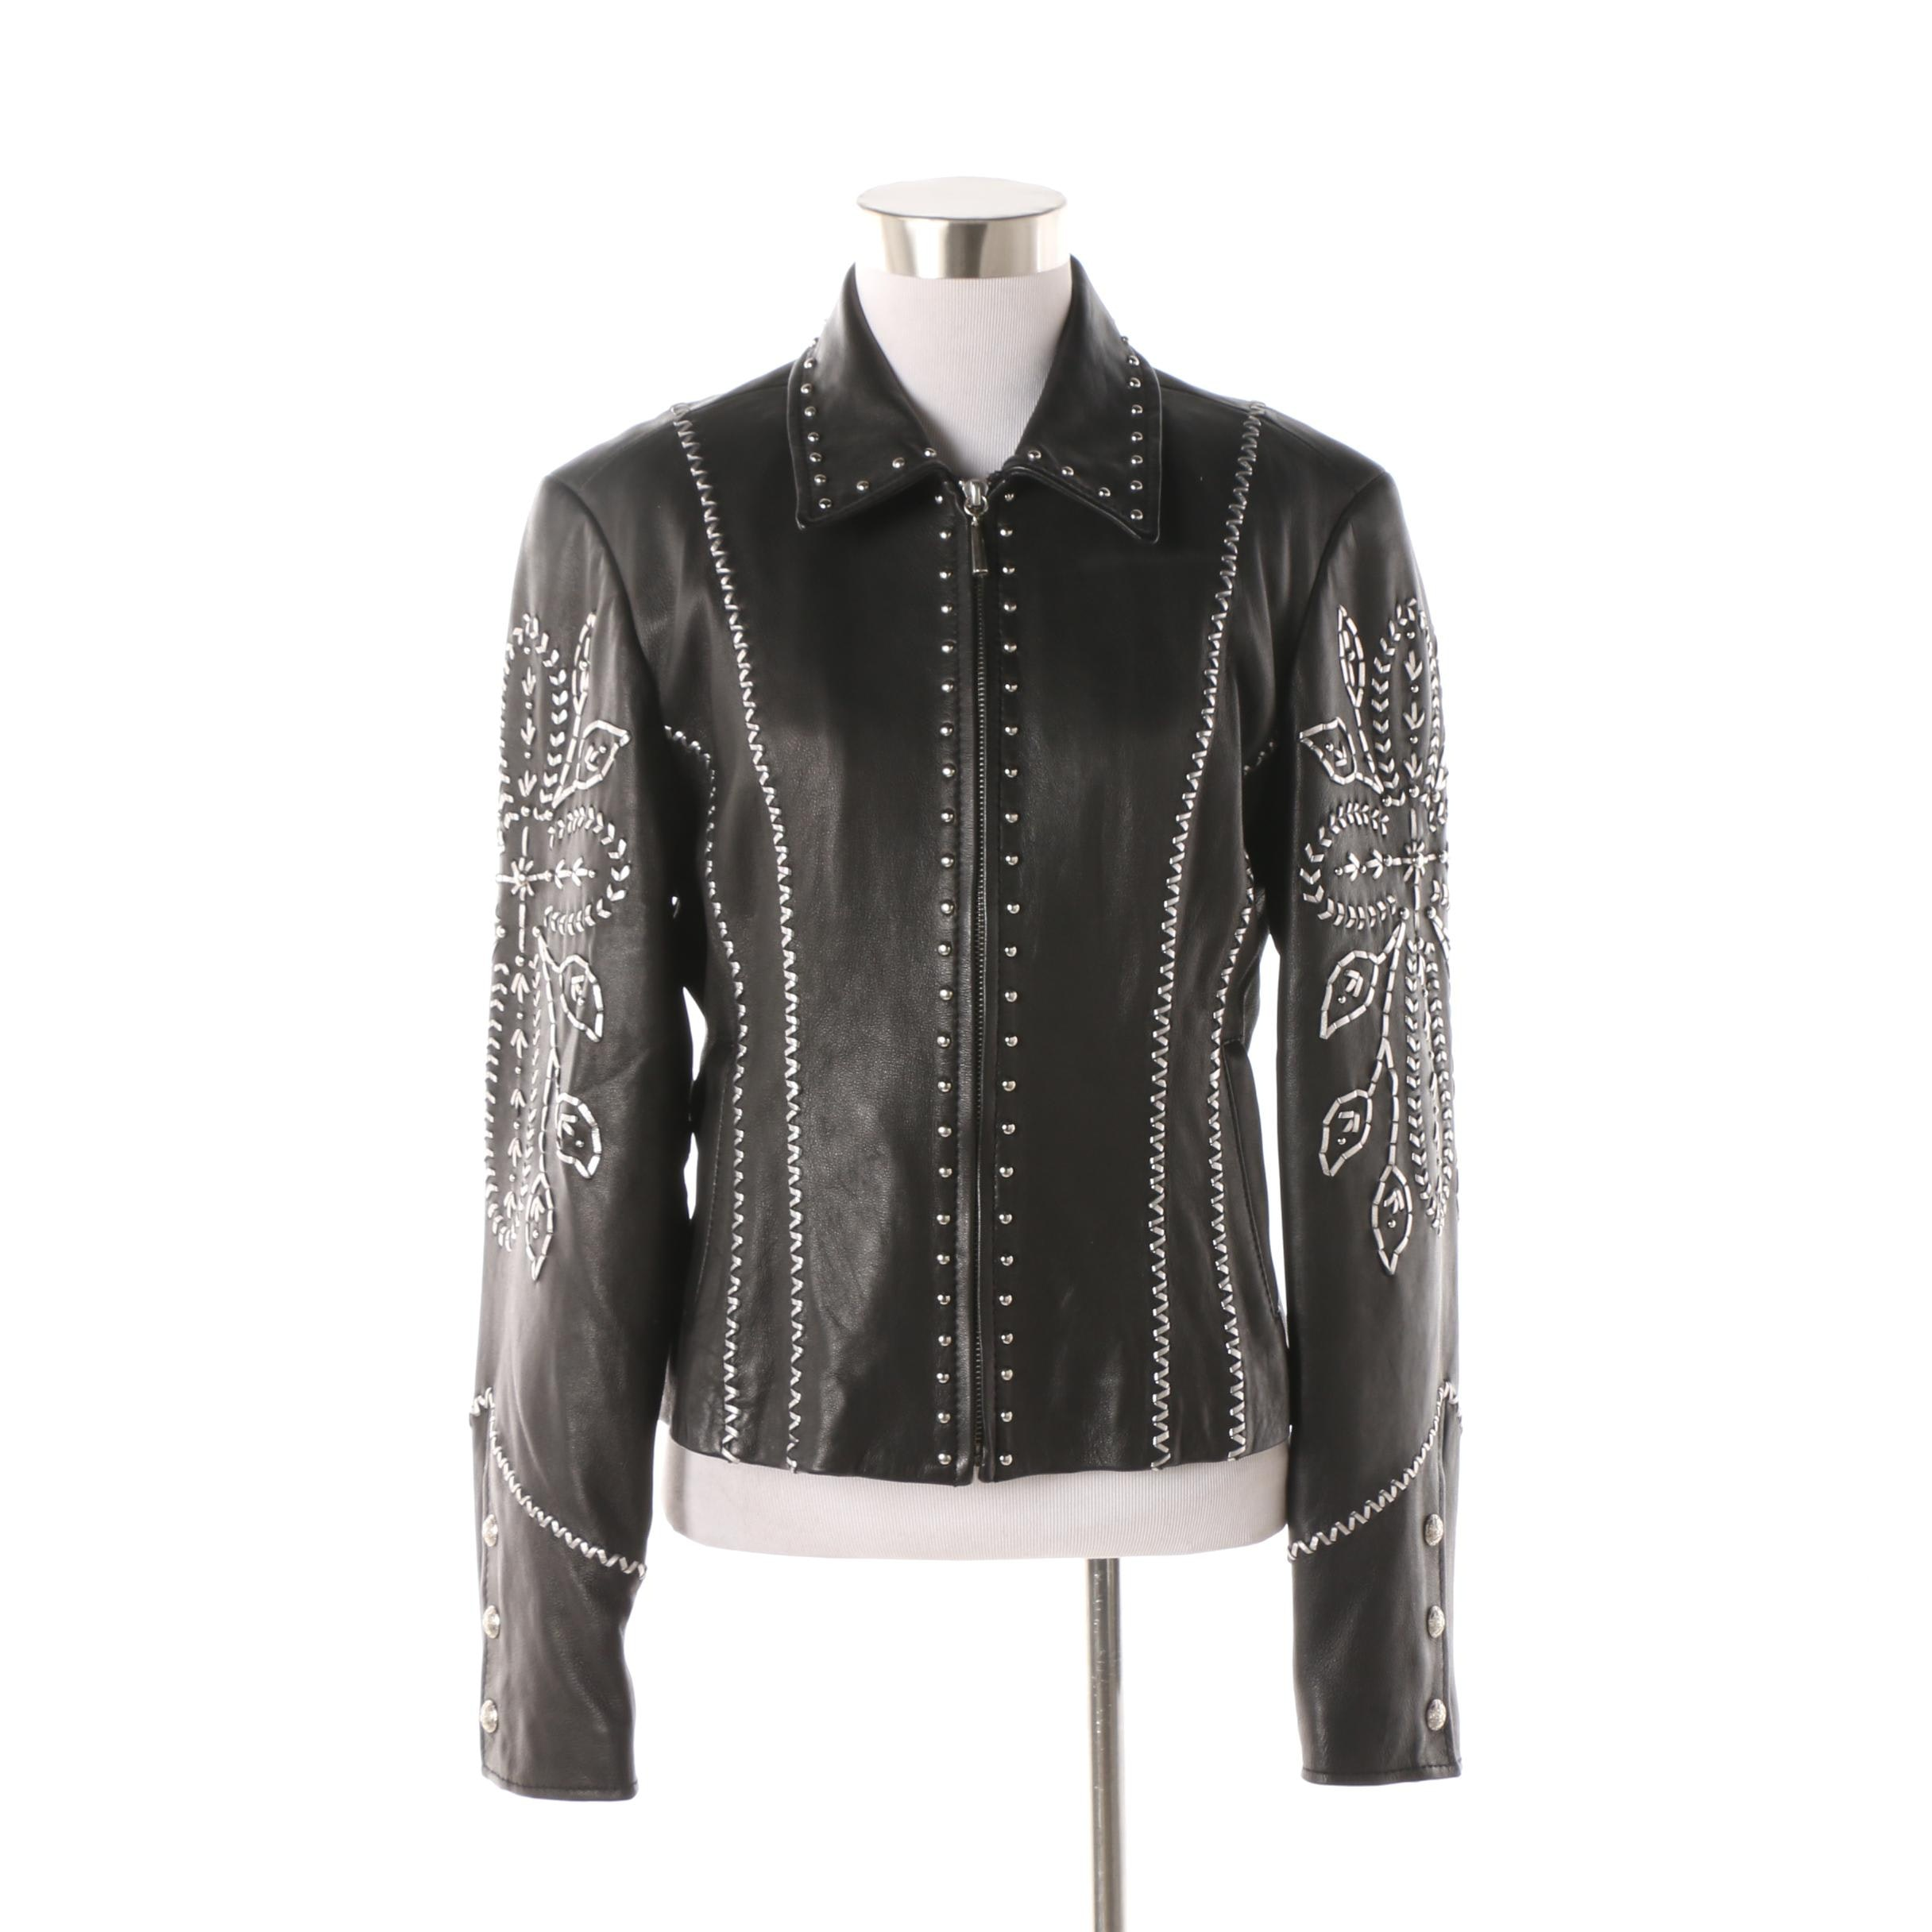 Cripple Creek Black Leather Jacket with Metallic Silver Leather Detail and Studs